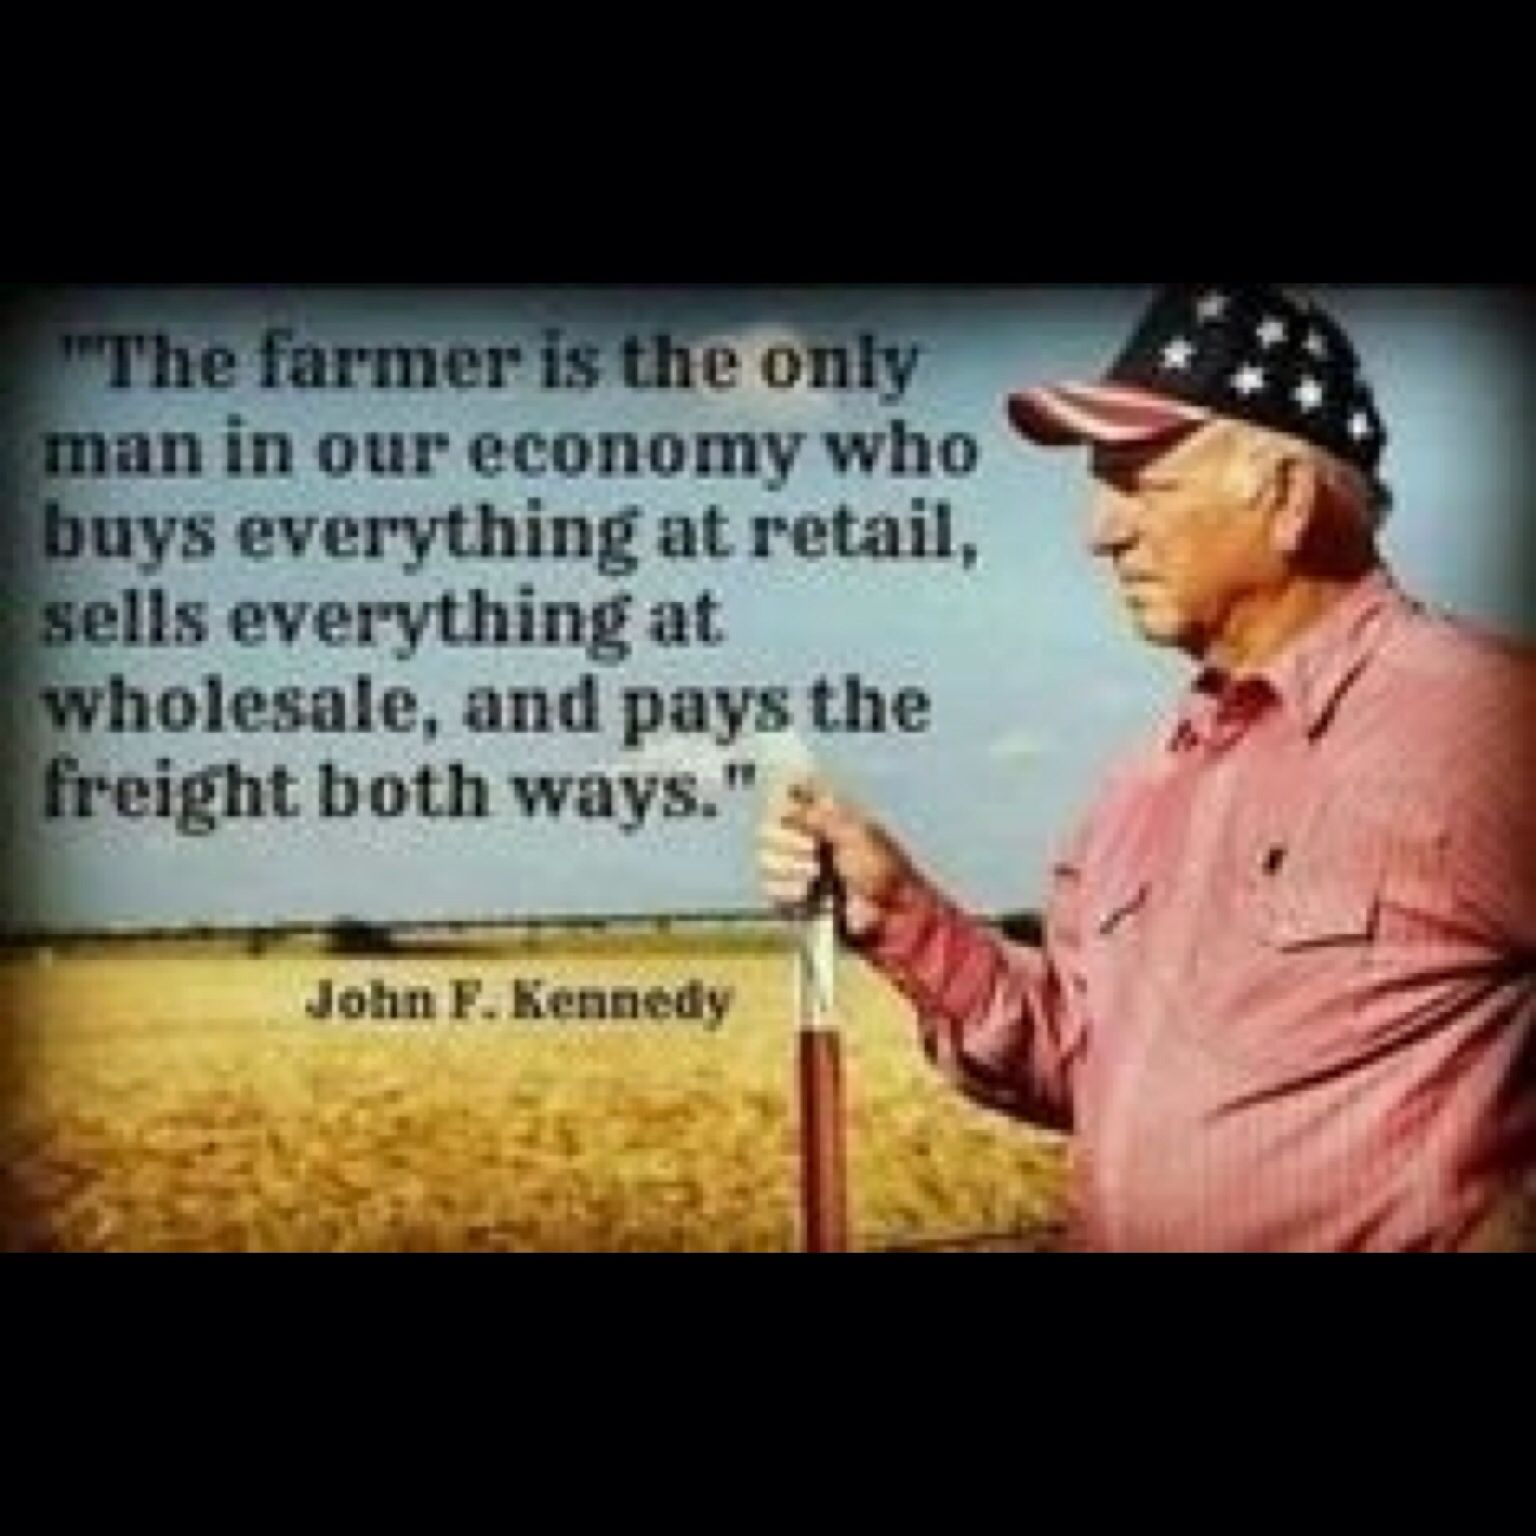 Farmer Quotes The Farmer Is The Only Man In Our Economy Who Buys Everything At